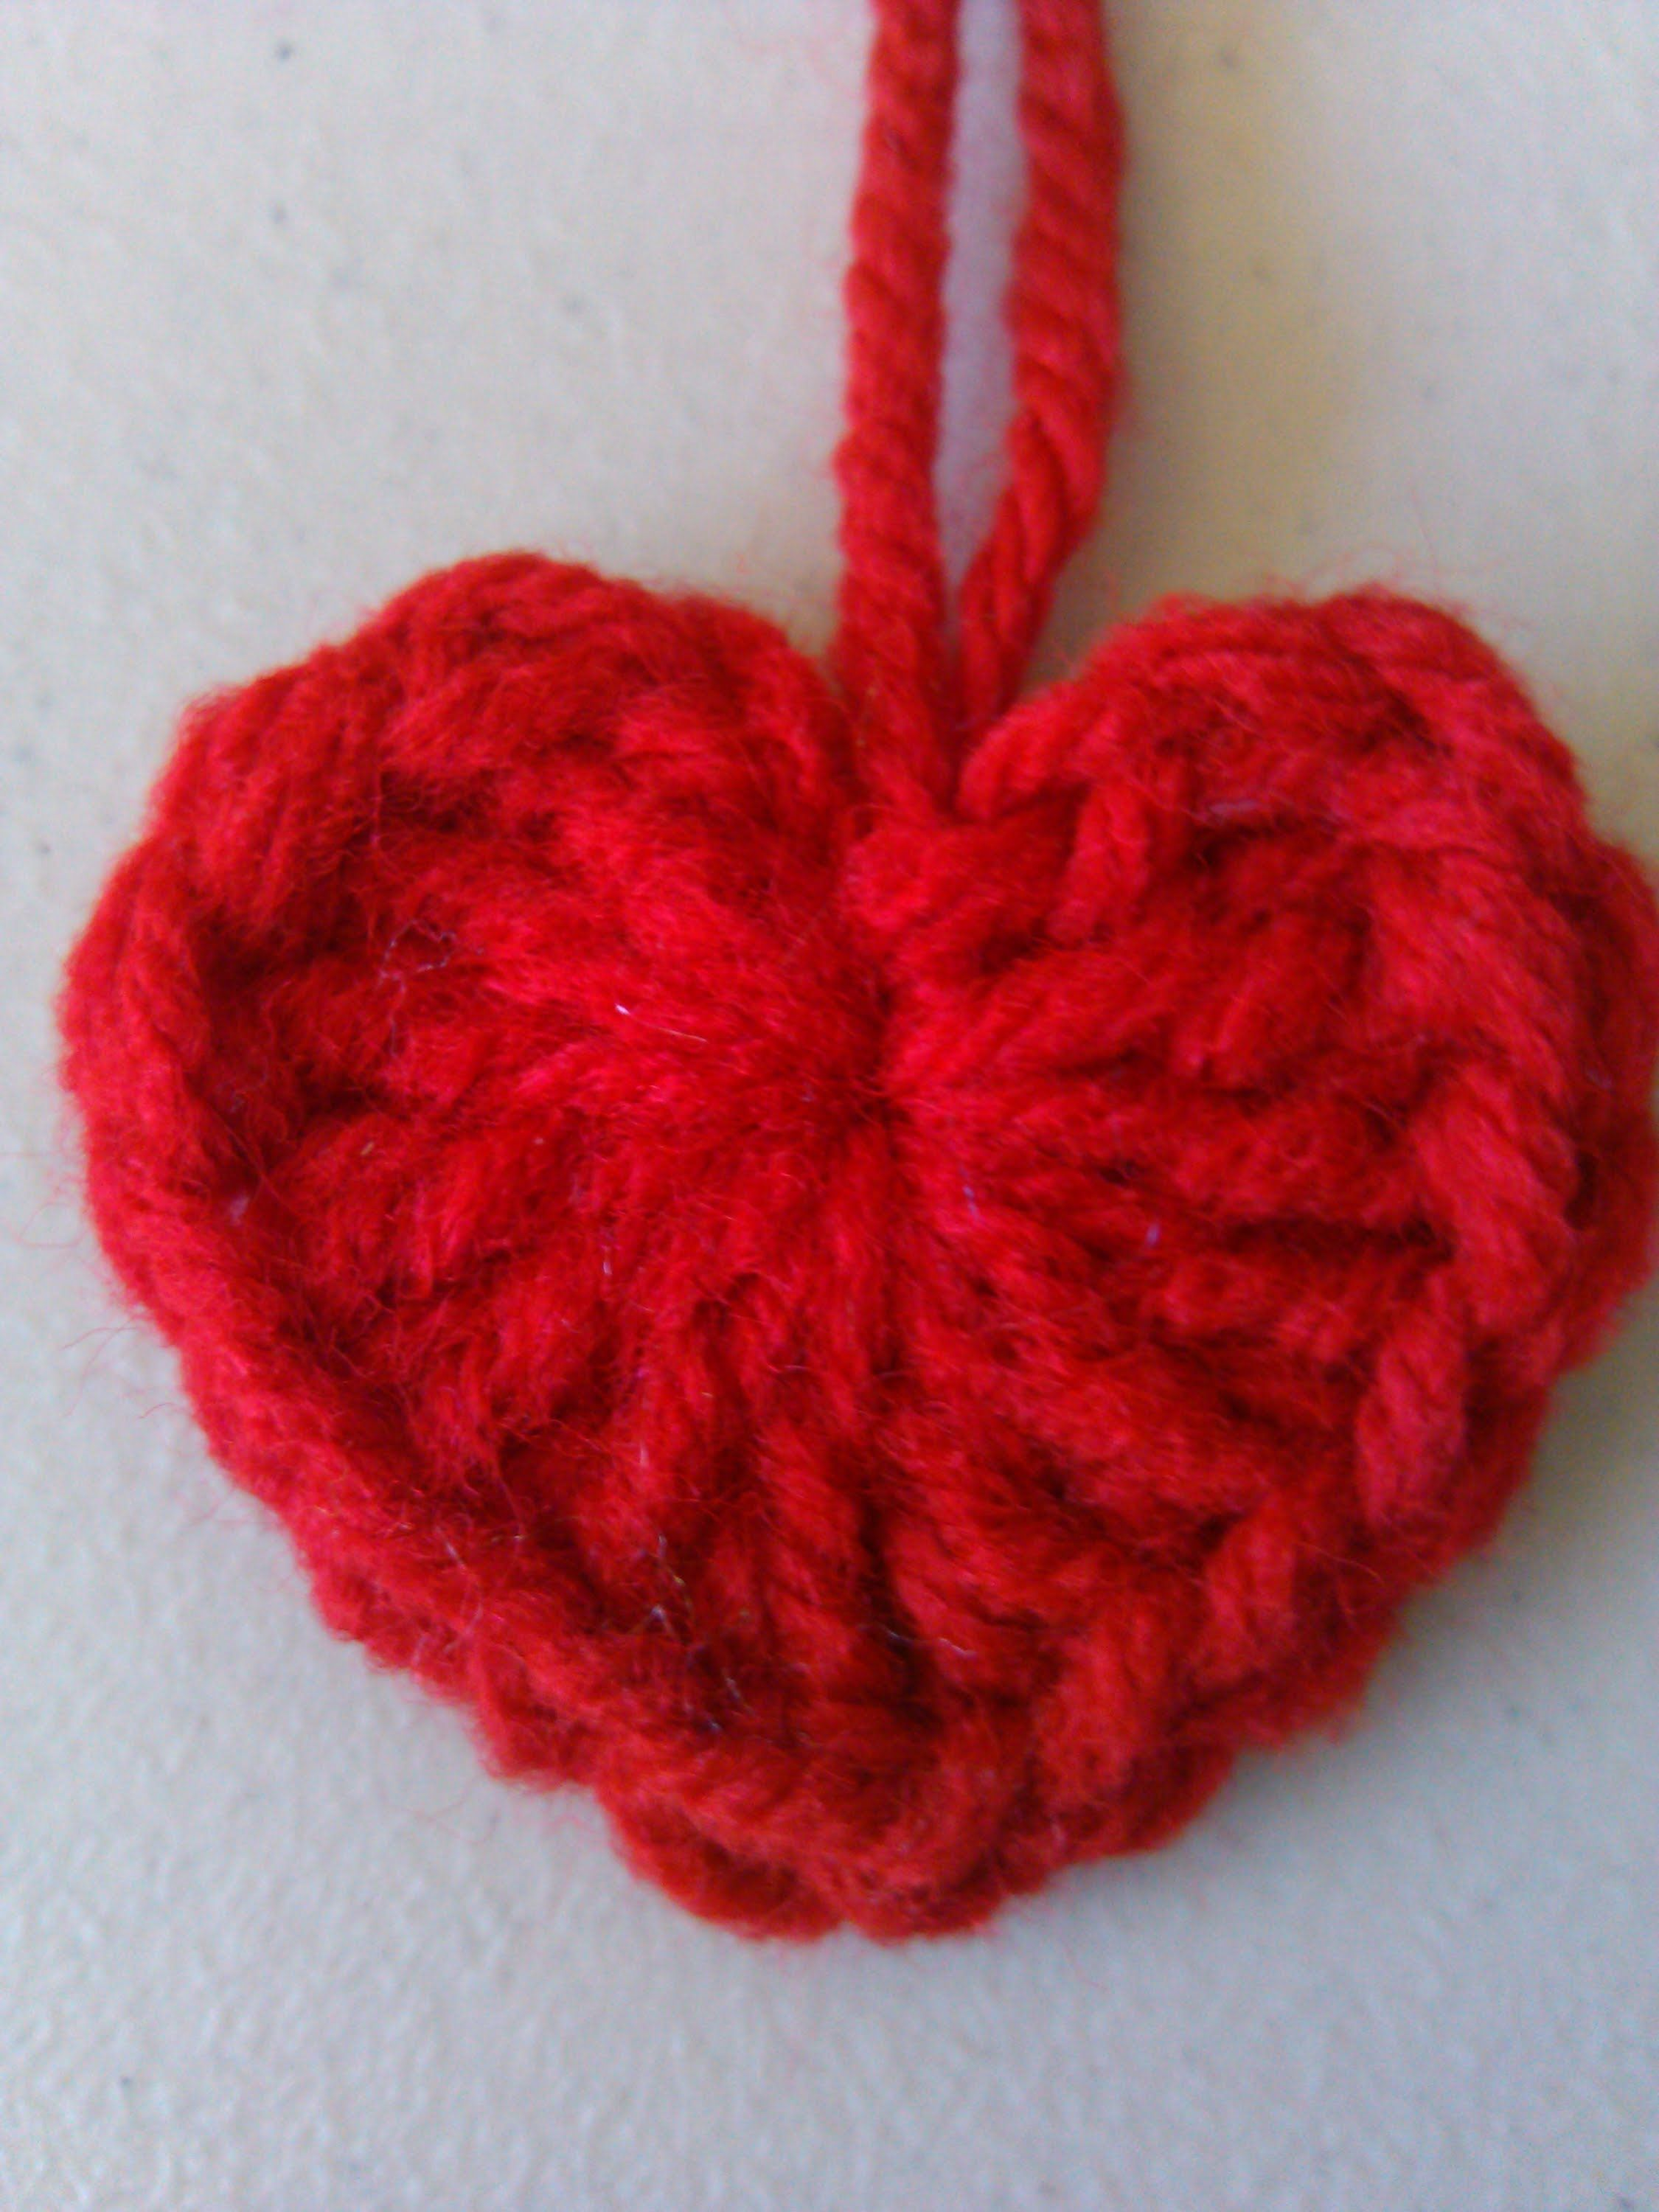 Crochet heart crochet pinterest crochet easy crochet and crochet heart bankloansurffo Images